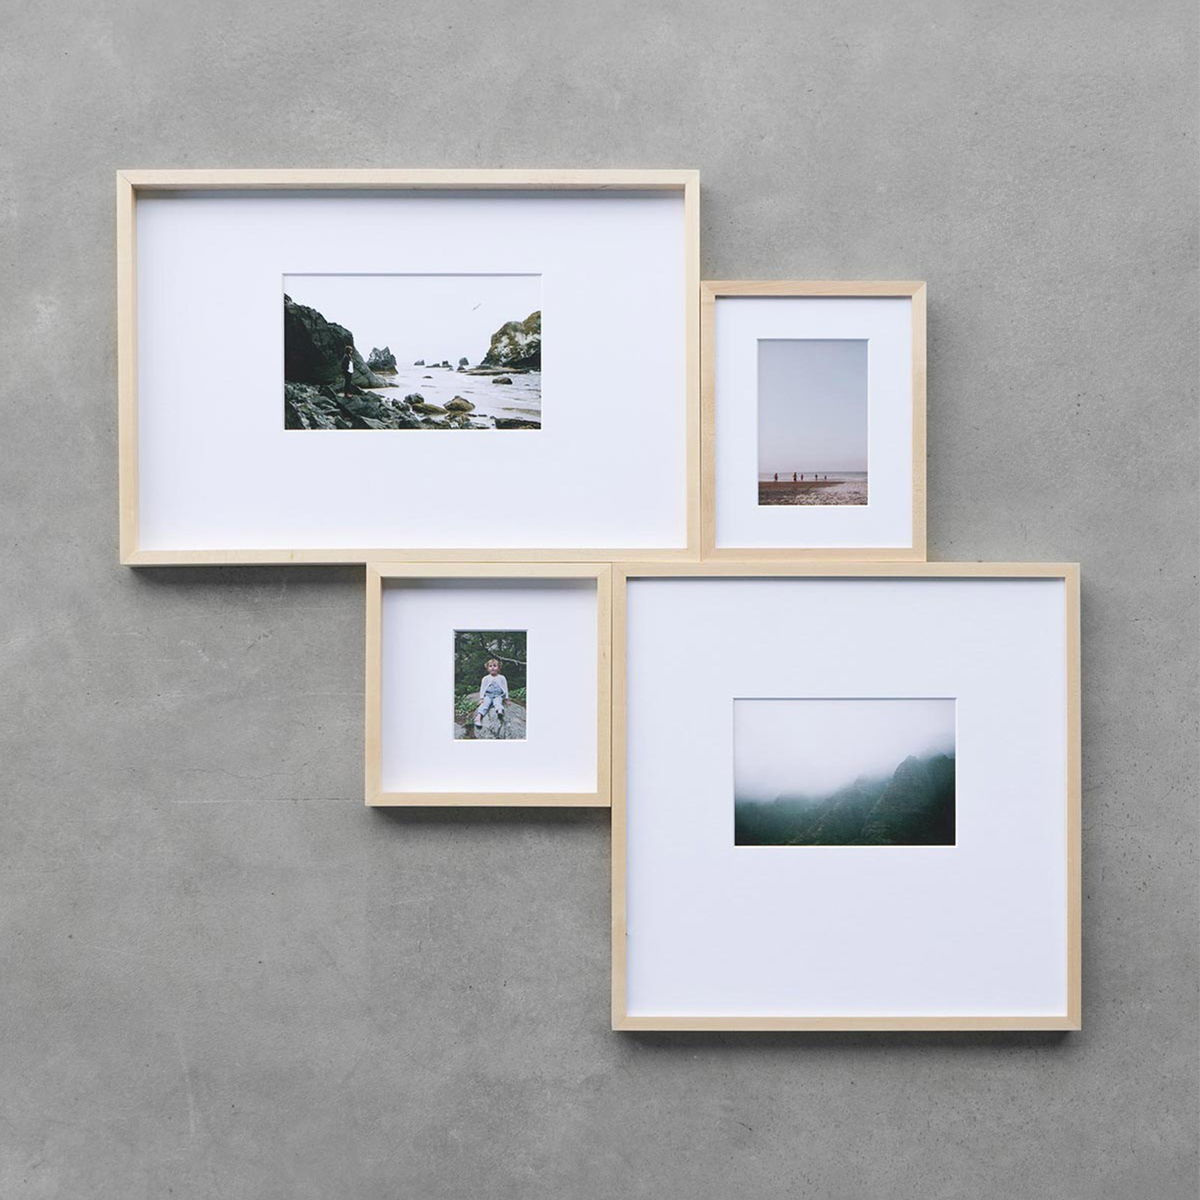 Small gallery wall of matted frames with no space between them